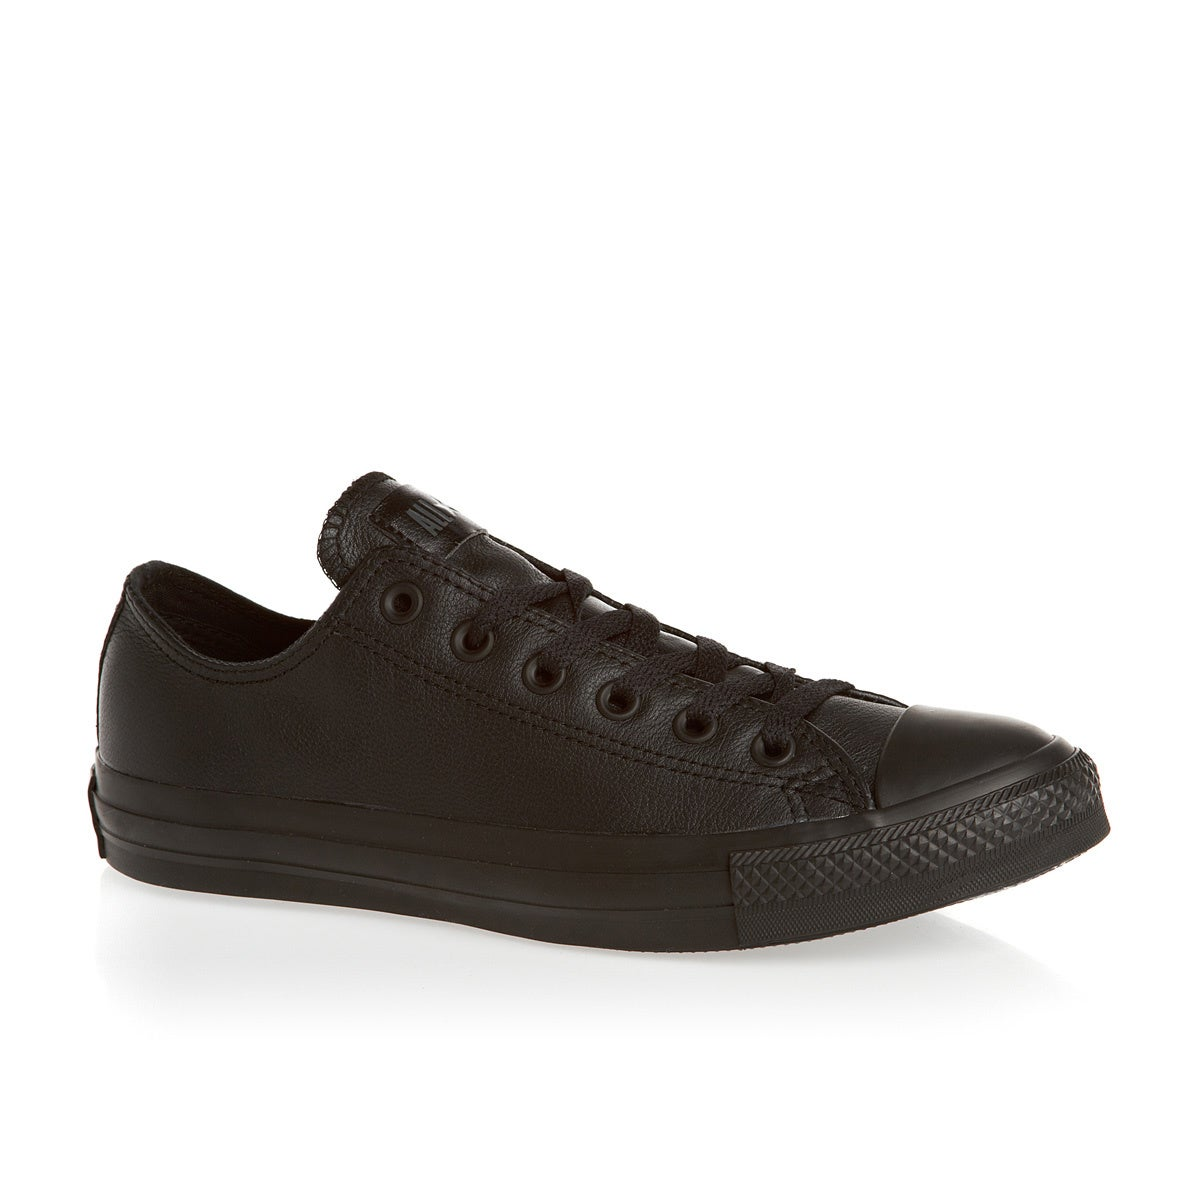 7cf08c915516 Converse Chuck Taylor All Stars Leather Shoes available from Surfdome